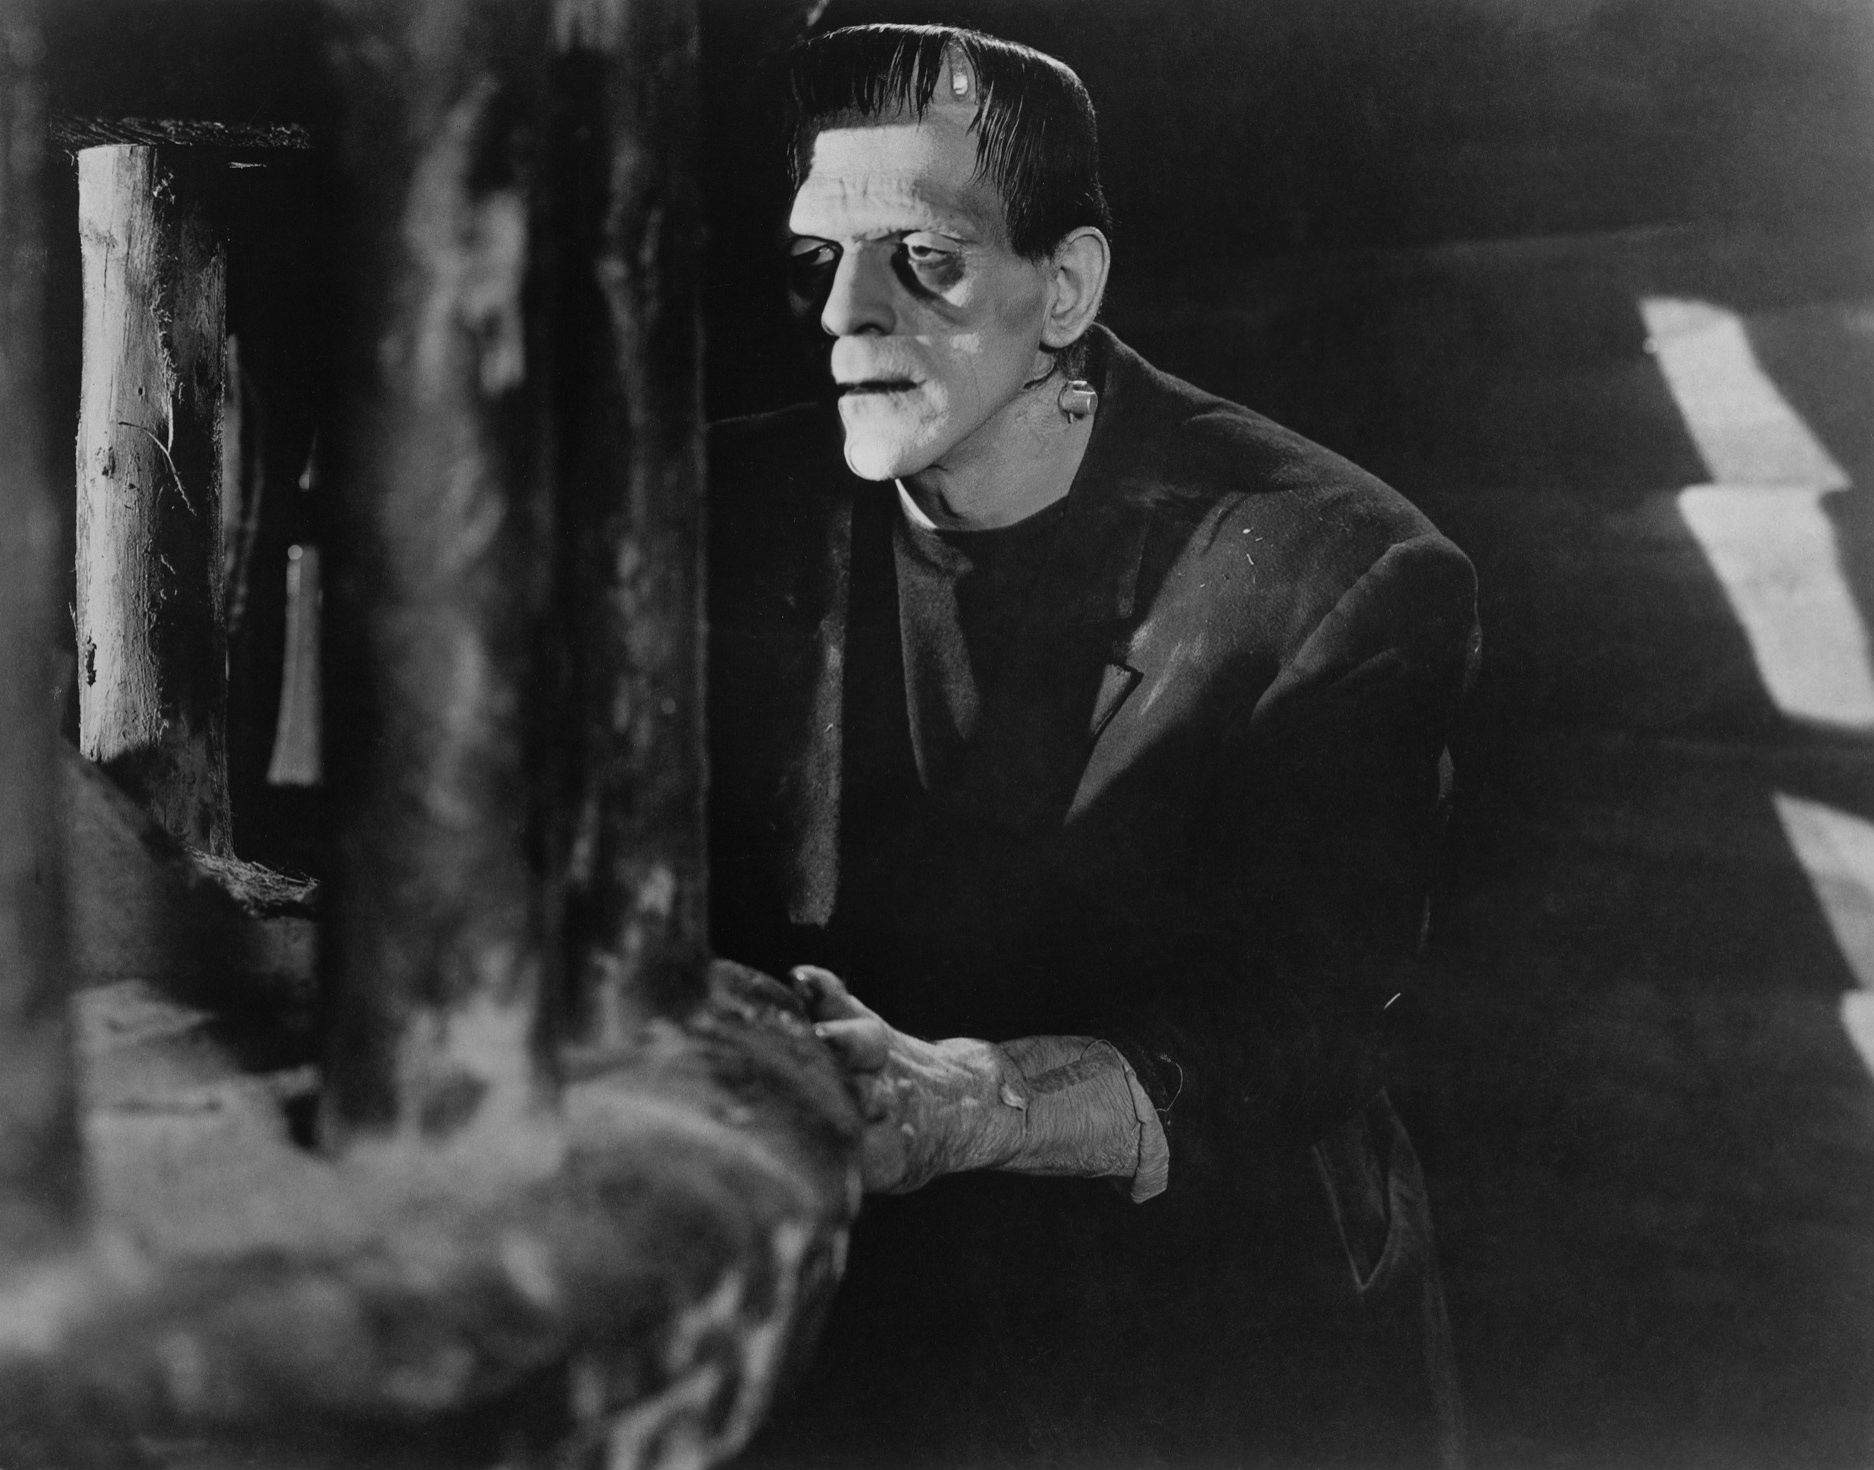 frankenstein social isolation Mother teresa once said, the most terrible poverty is loneliness, and the feeling of being unloved mary shelley's frankenstein touches on some key issues surrounding loneliness and abandonment.